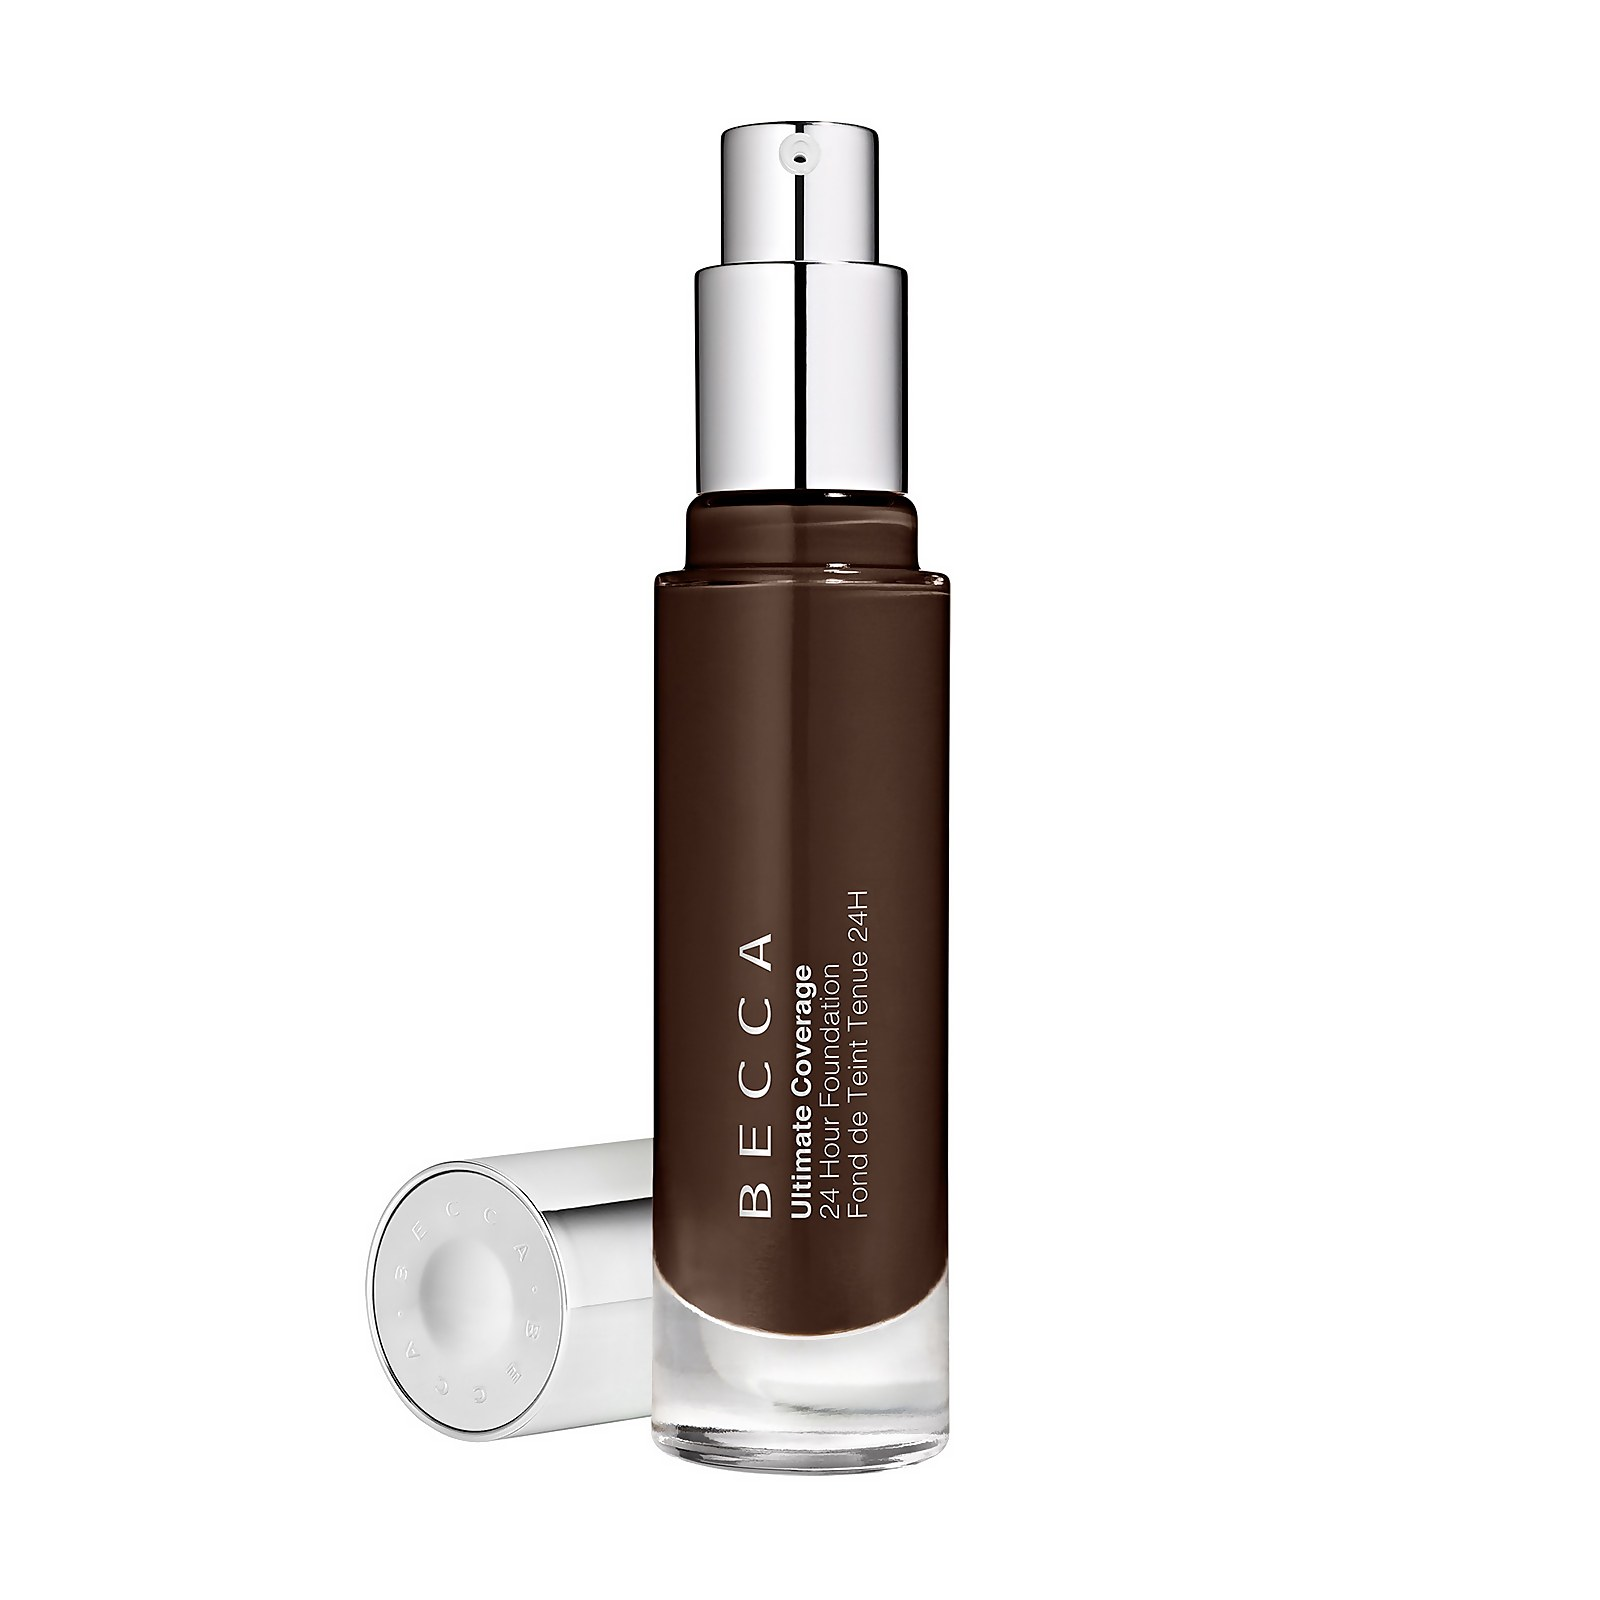 BECCA Ultimate Coverage 24 Hour Foundation 30ml (Various Shades) - Chestnut